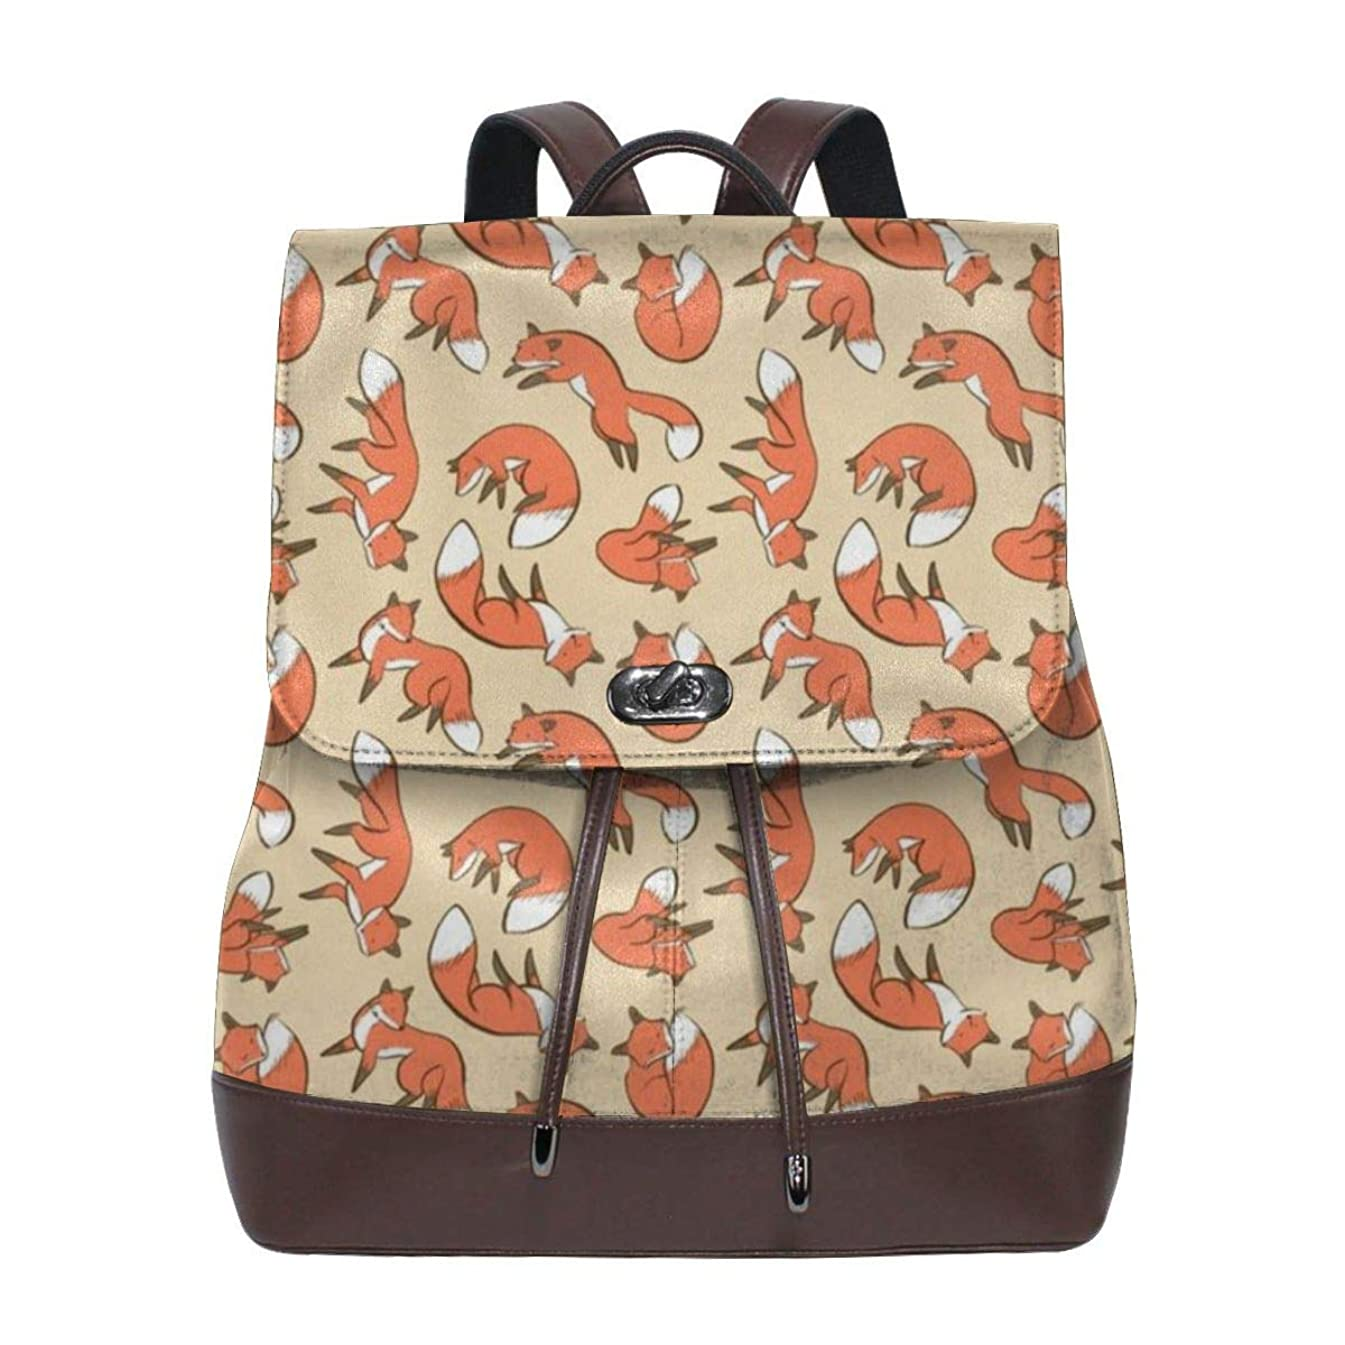 Beautiful Fox Womens Leather Backpack Vintage Laptop Backpack Travel Daypack College School Bookbag For Women Girls & Students